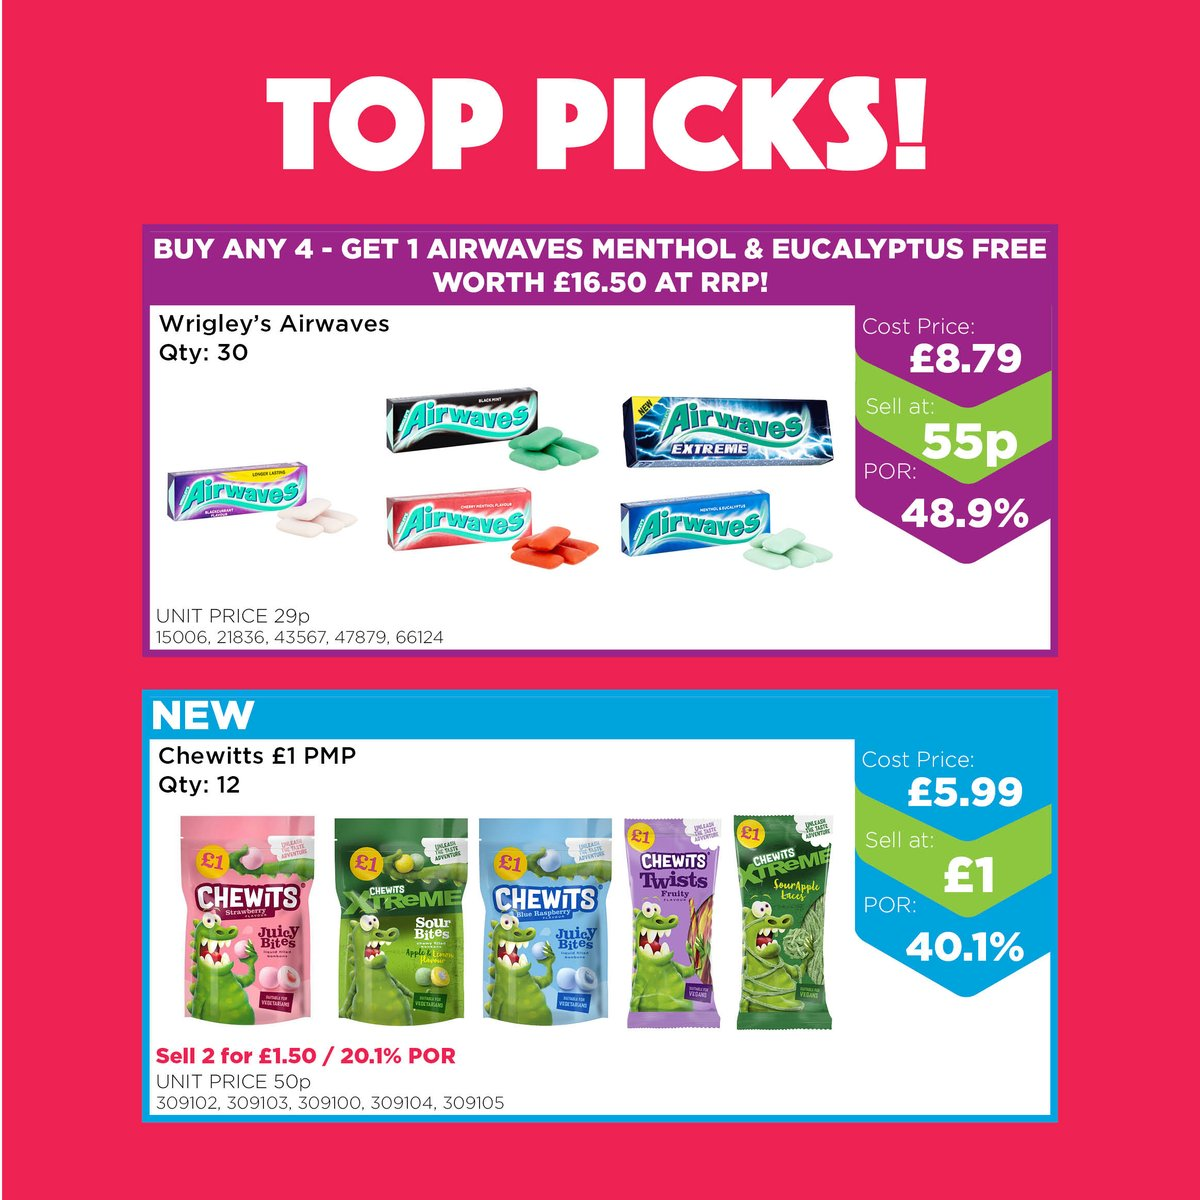 Rest assured all 14 of our cash and carry stores remain open as usual under normal opening hours! 🛒  Shop in-store and online today and check out our NEW SWEET DEALS at https://t.co/HInNF1Gmxf   Here's a peak at a few top offers available! 👀 https://t.co/Srldkpfybf